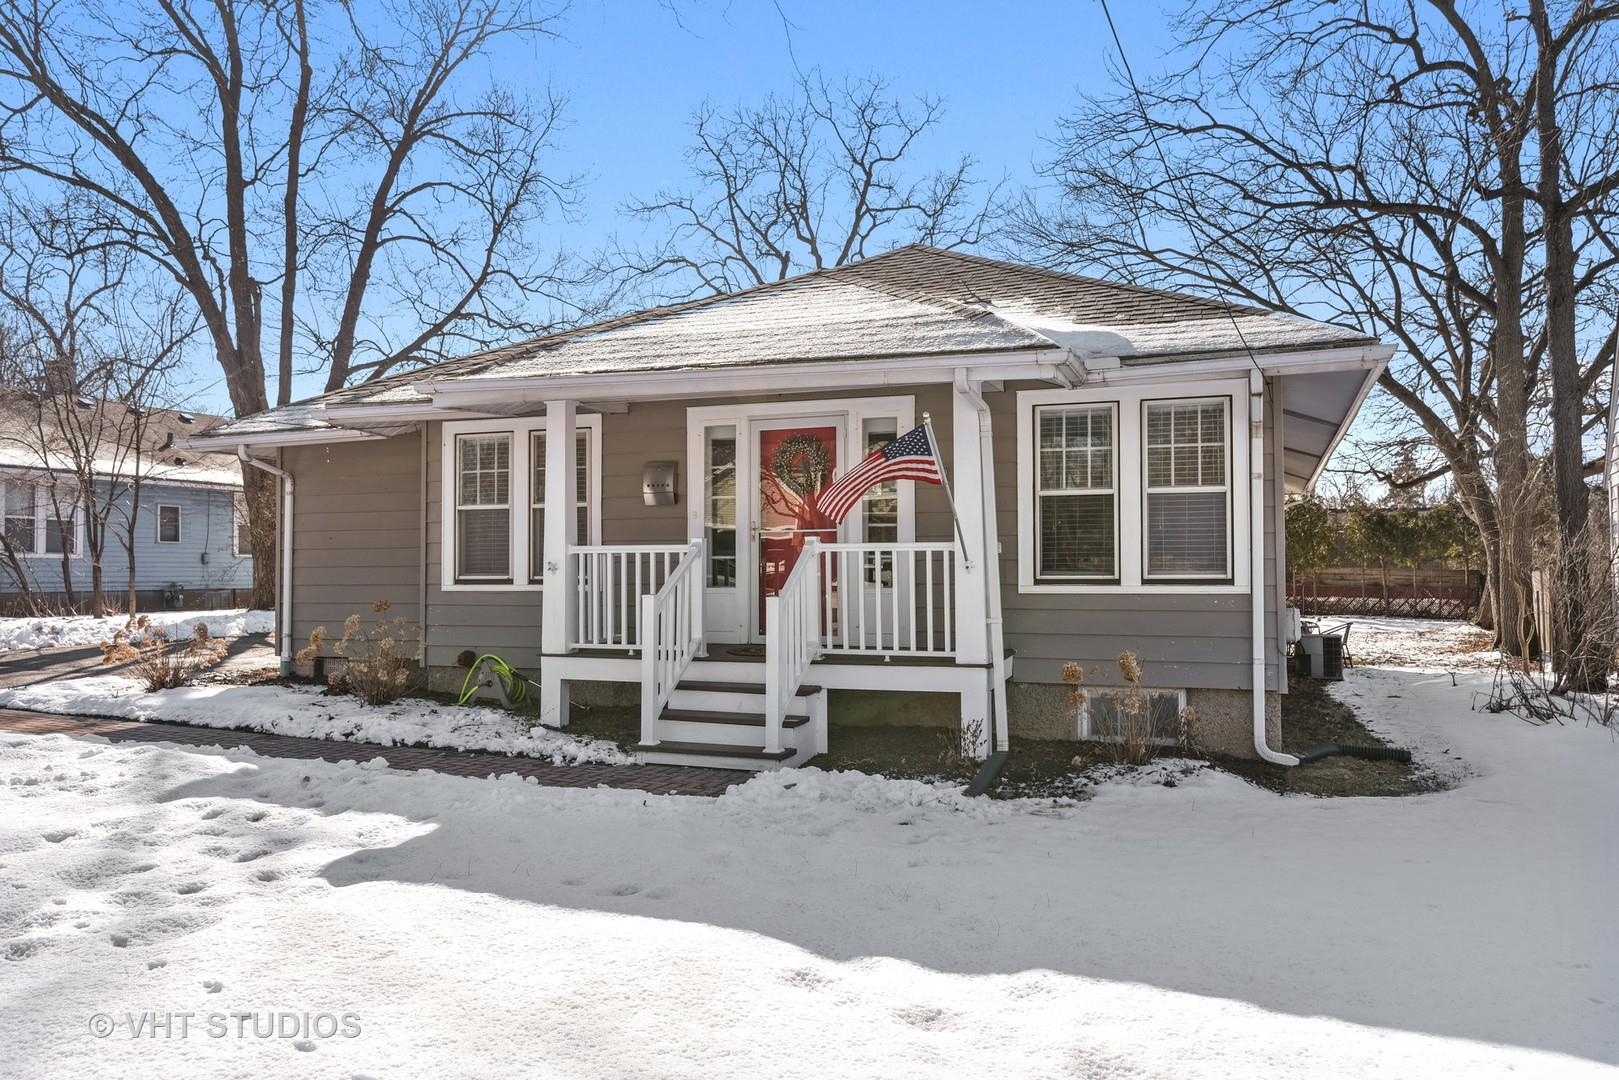 120 S ORIOLE Trail, Crystal Lake, IL 60014 - #: 10669309